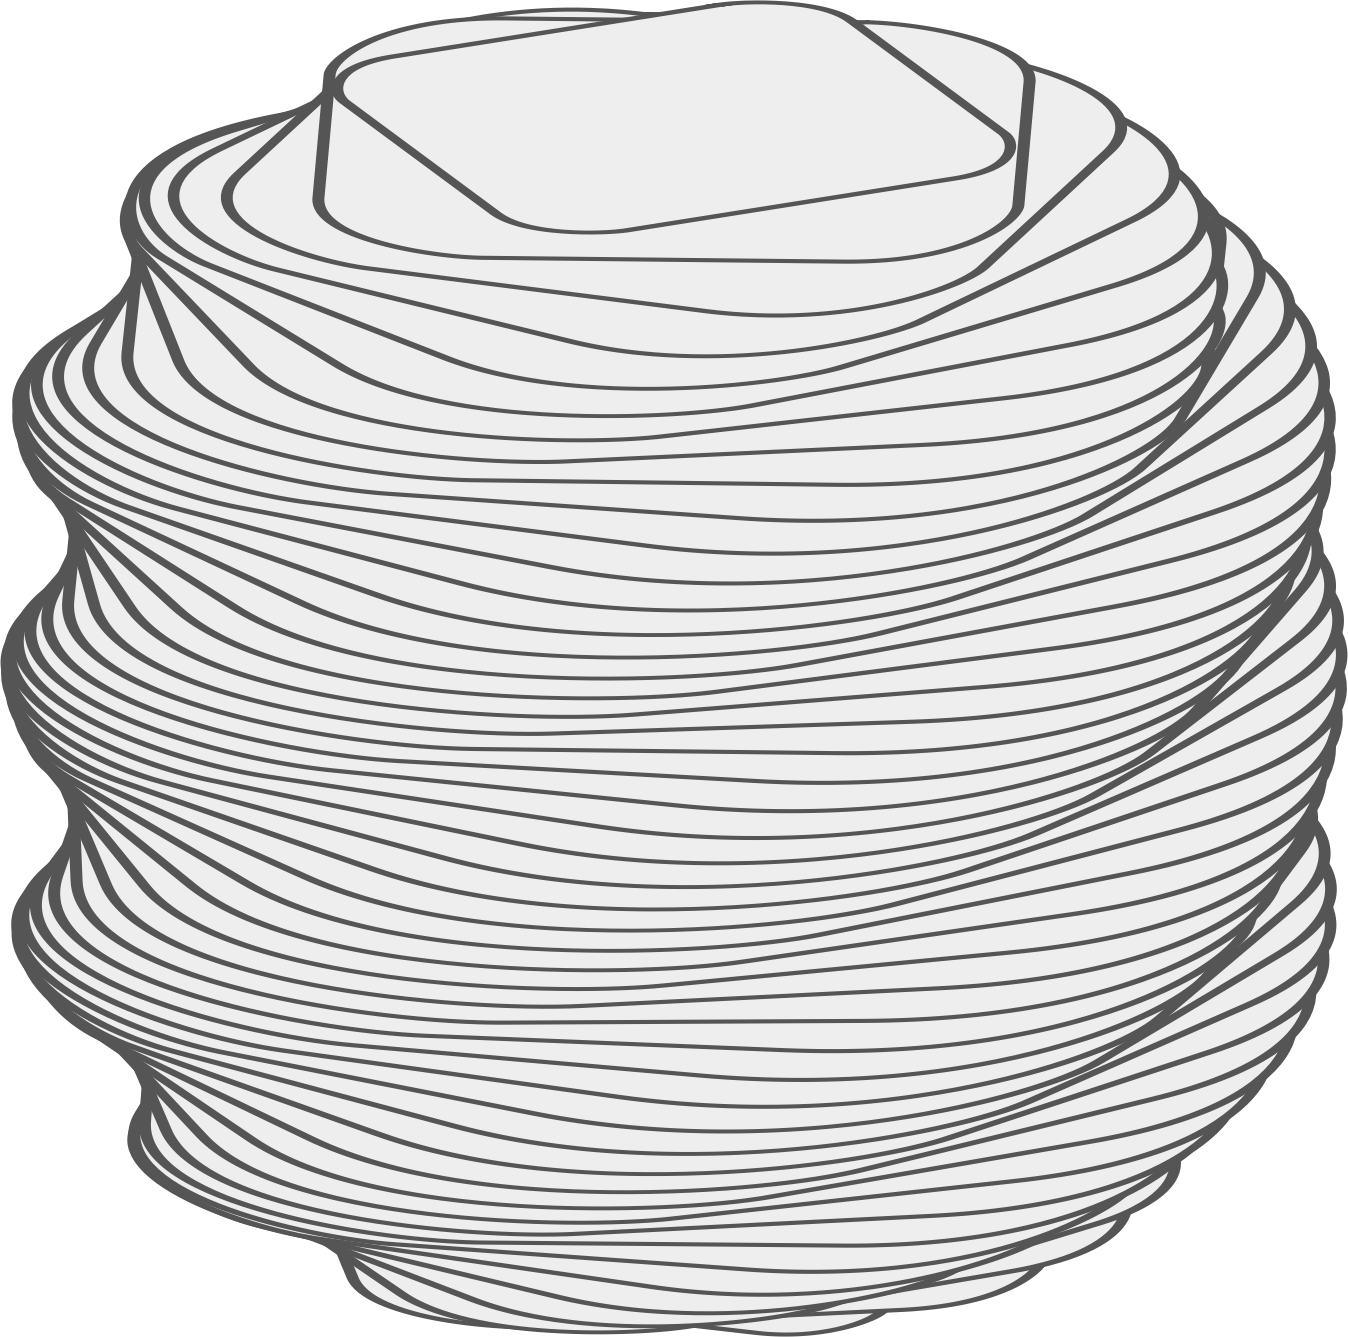 Twisted rounded big image. Block clipart animated